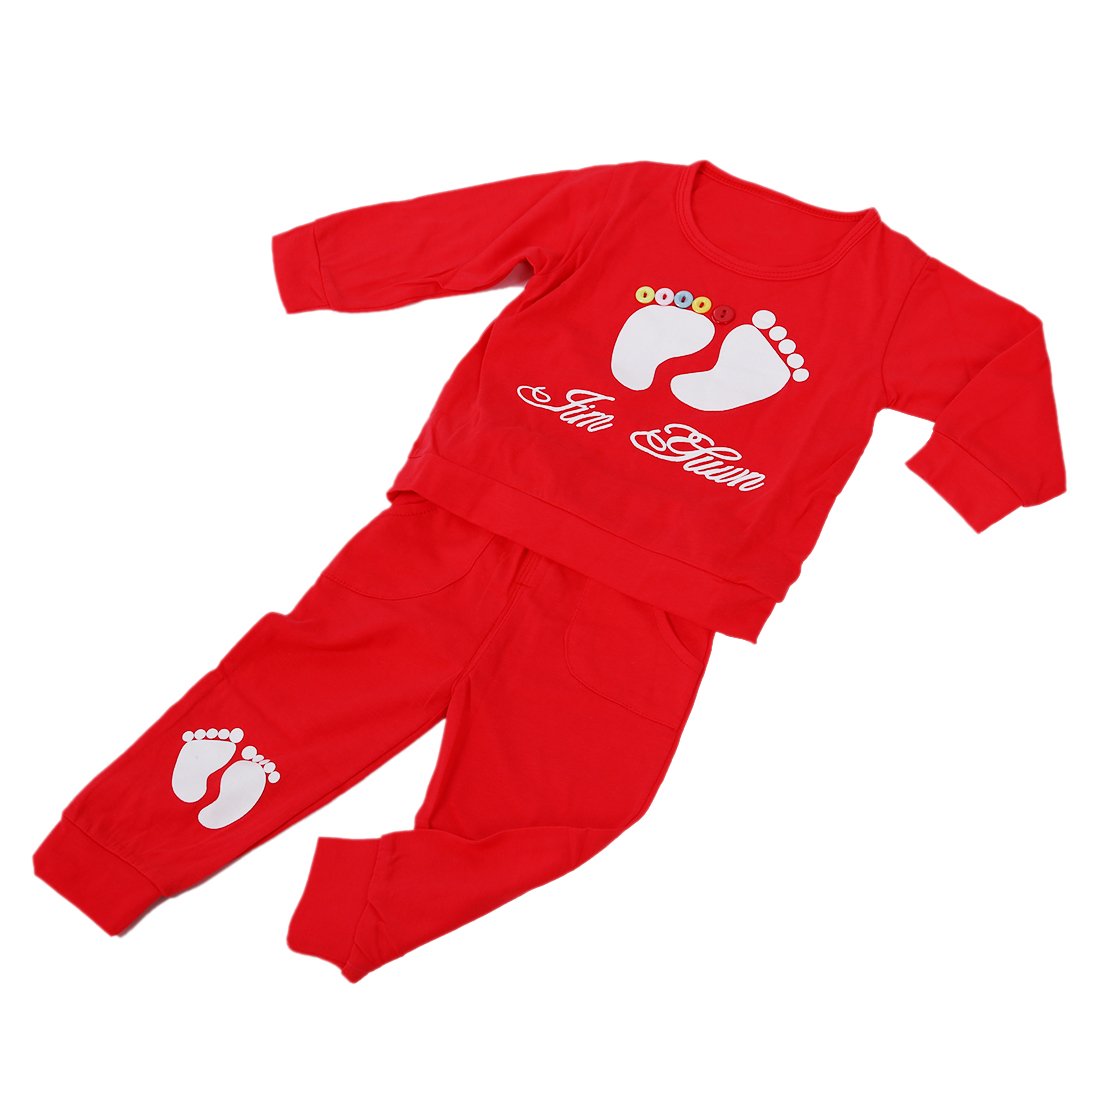 KEOL Best Sale High Quality 100% Cotton baby clothing set,Toddlers children set,baby boys girls 2 pcs Footprints ,Hot sale-Red